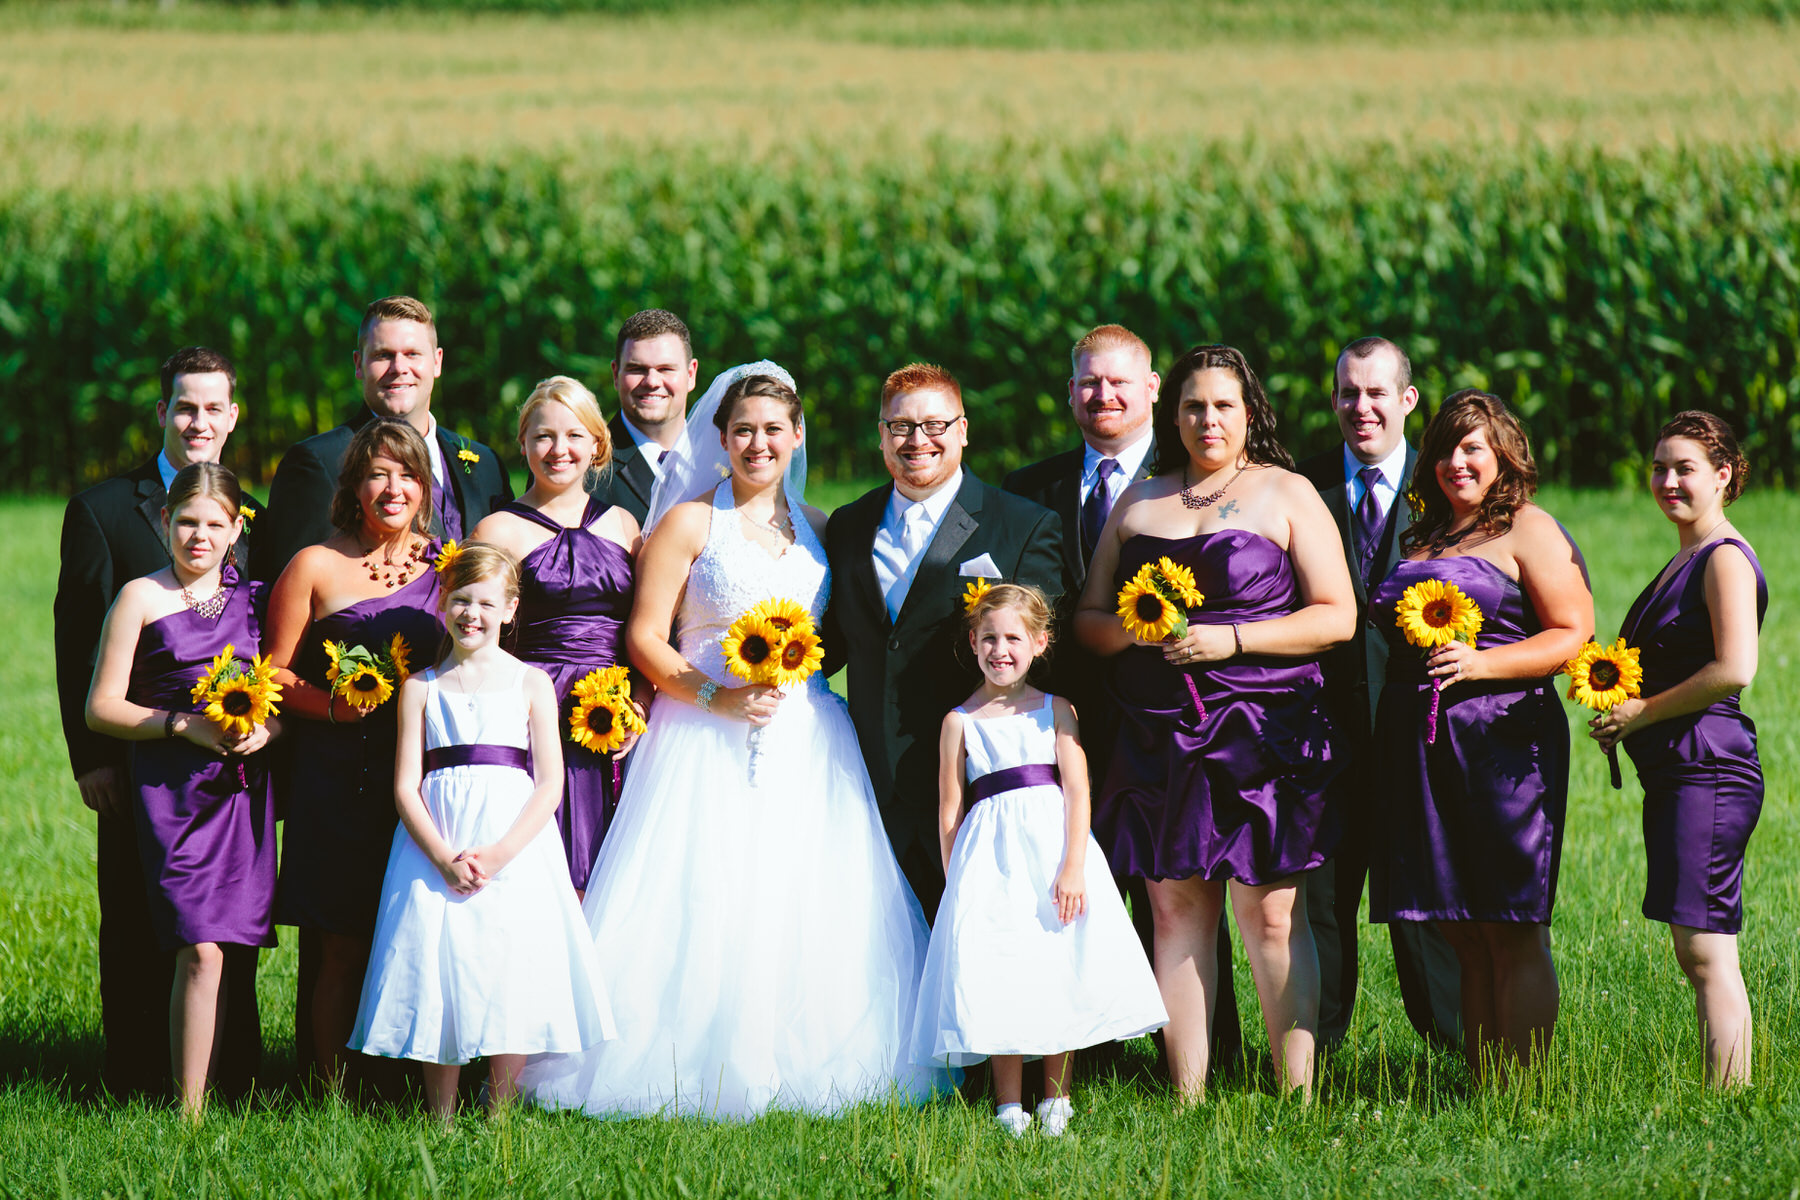 silly wedding party photo at doubletree lancaster wedding by Washington DC Wedding Photographer Adam Mason